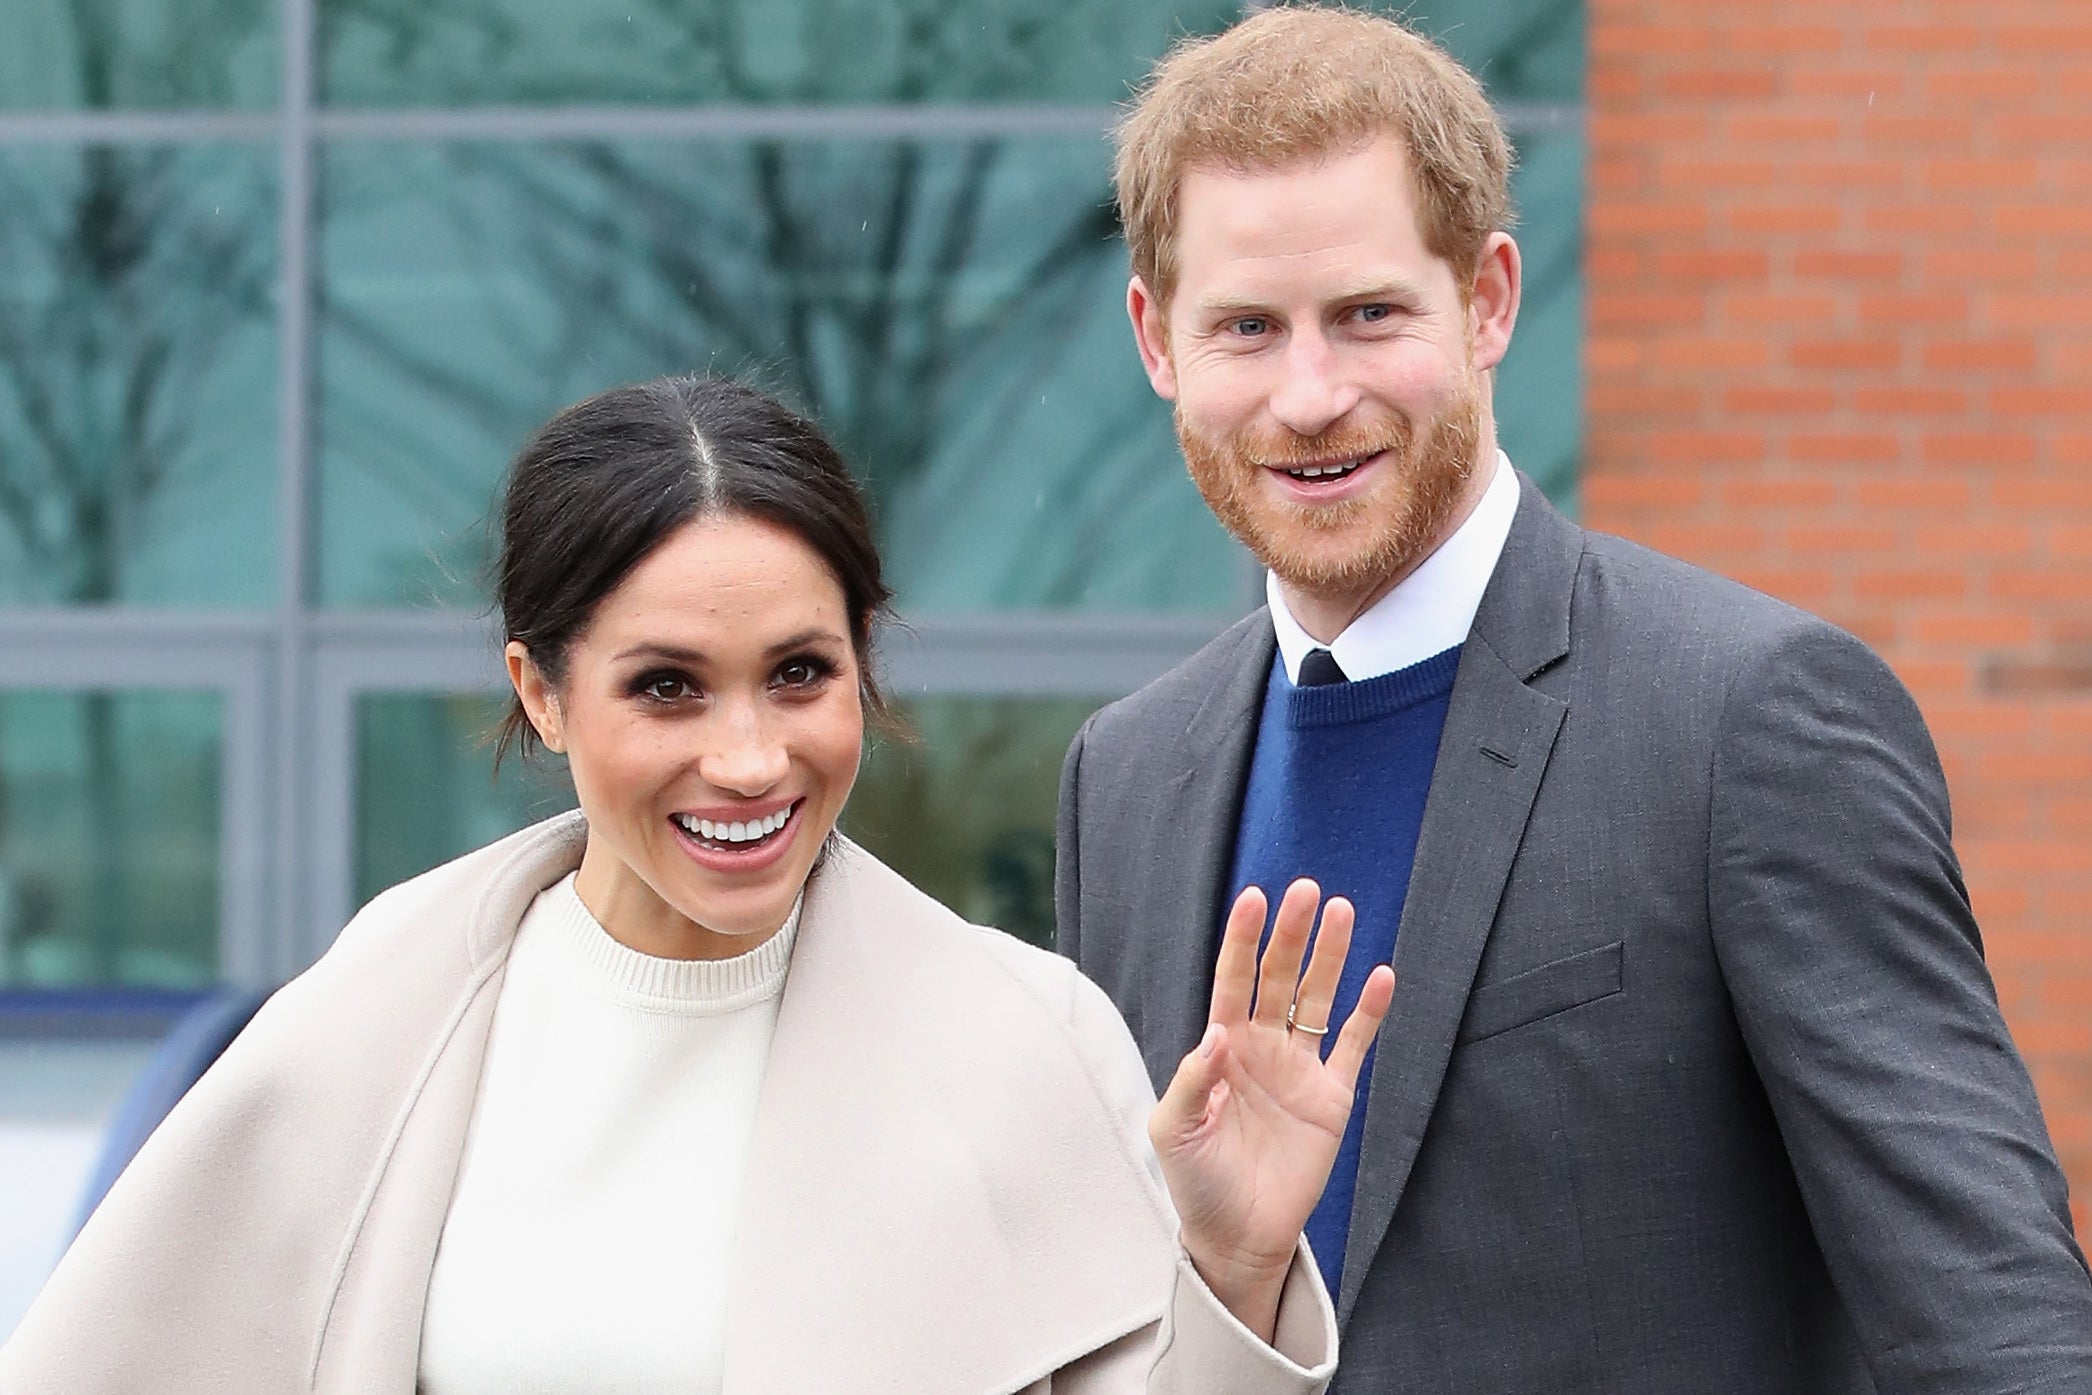 Cbs Royal Wedding Coverage.Royal Wedding How To Watch Ceremony Live In Uk And Us Today